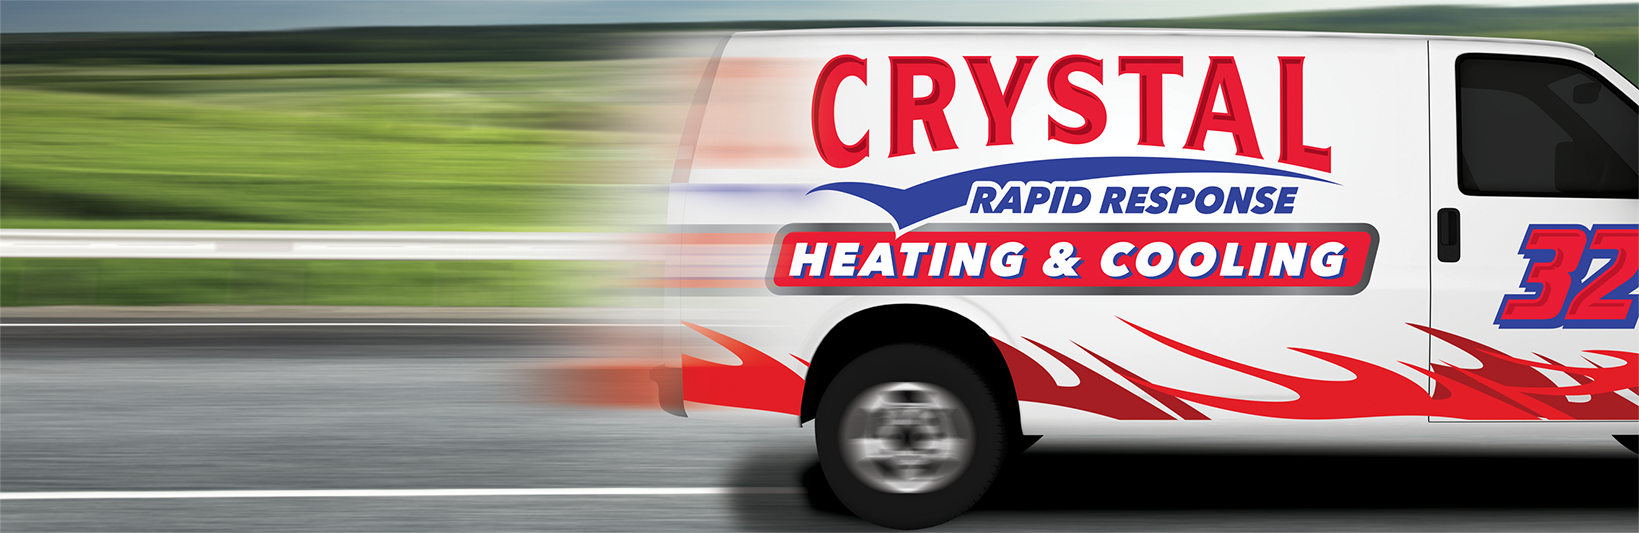 Crystal Heating & Cooling. The Fleet that Can't Be Beat!